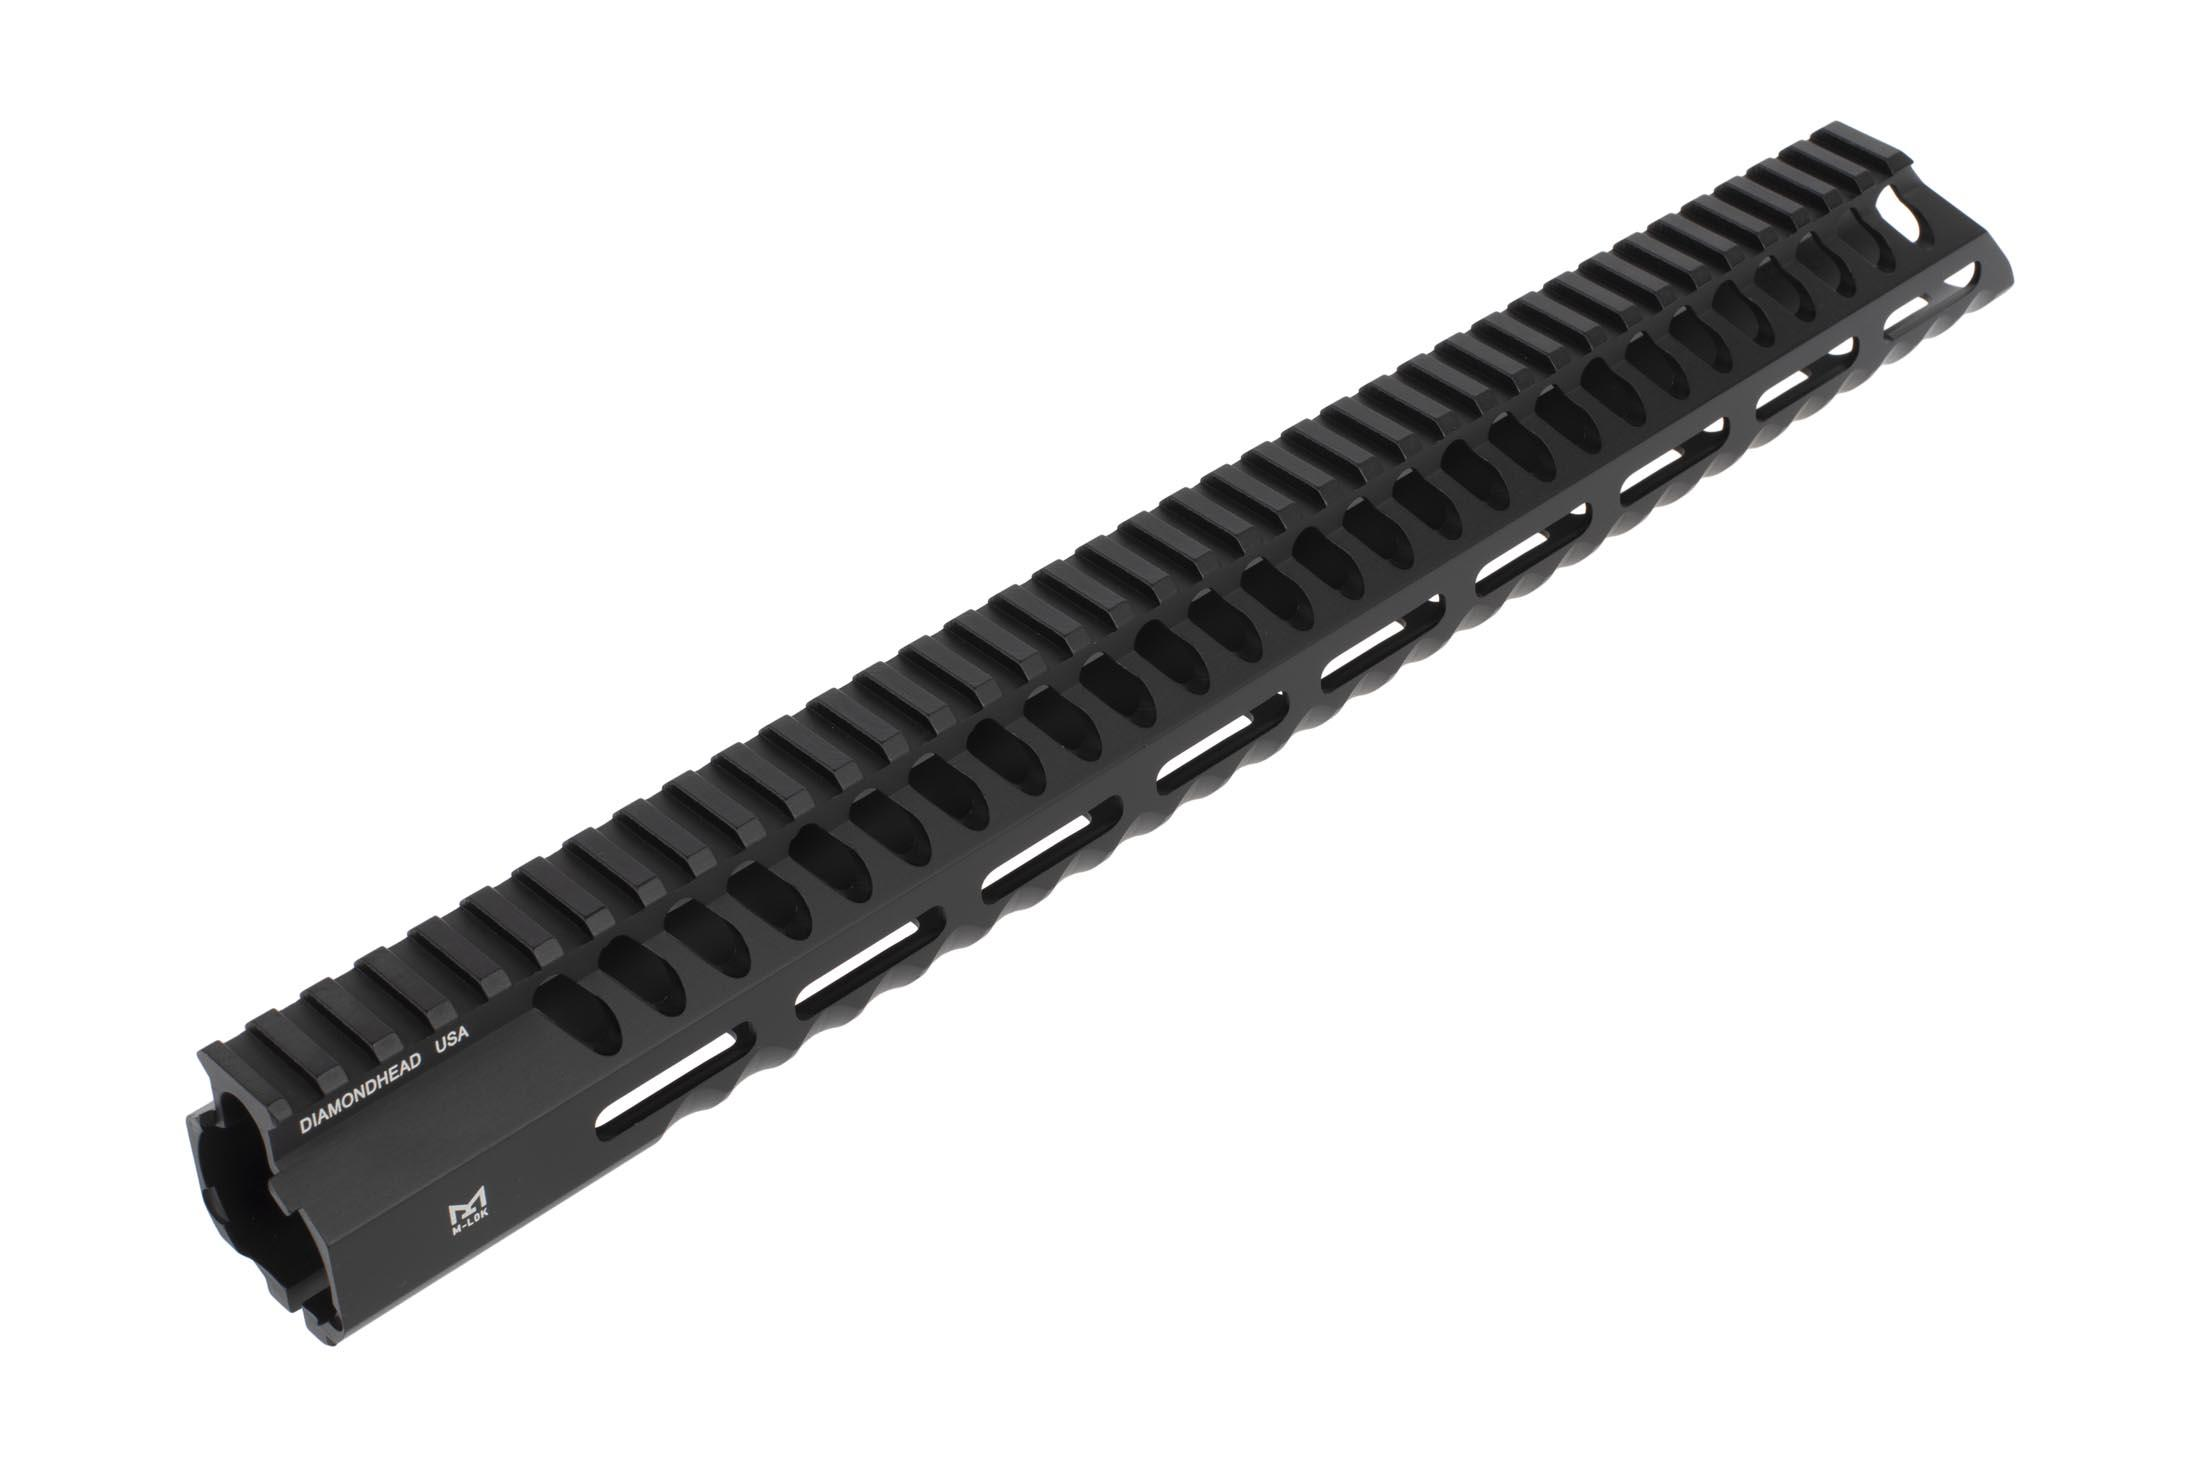 Diamondhead USA Series 3 VRS-T free float 15in AR15 handguard features anti-rotation tabs and M-LOK compatibility